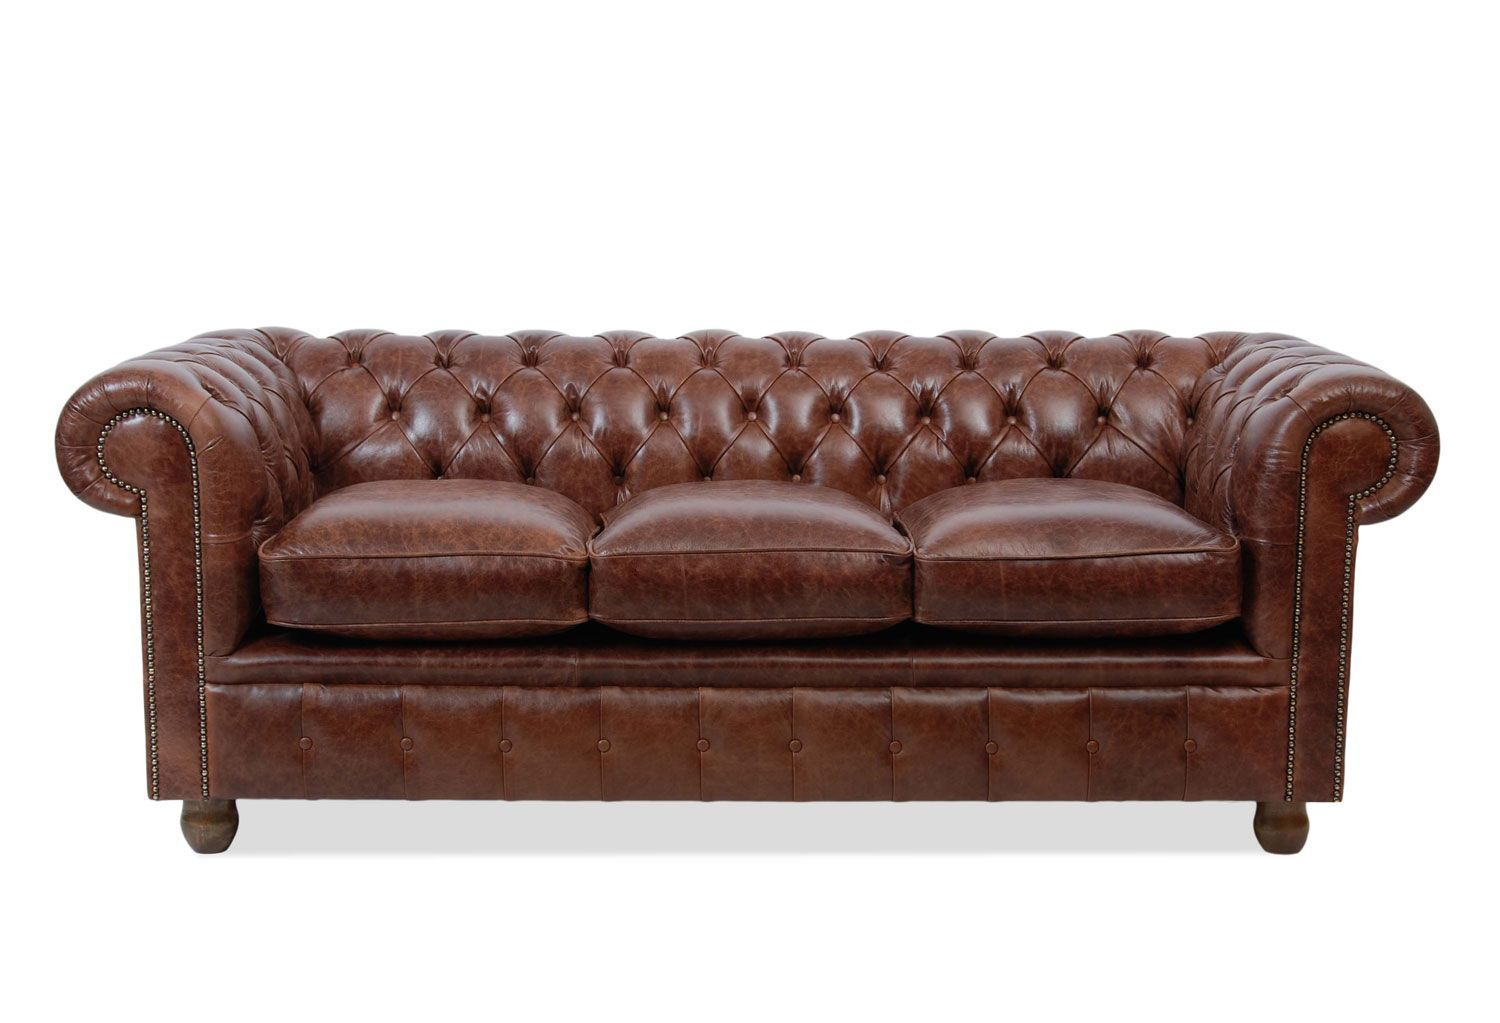 Vintage oxblood leather three seater chesterfield sofa has the vintage oxblood leather three seater chesterfield sofa has the preferred button base seat no plain cushion pads to slide about and a deep armb parisarafo Image collections